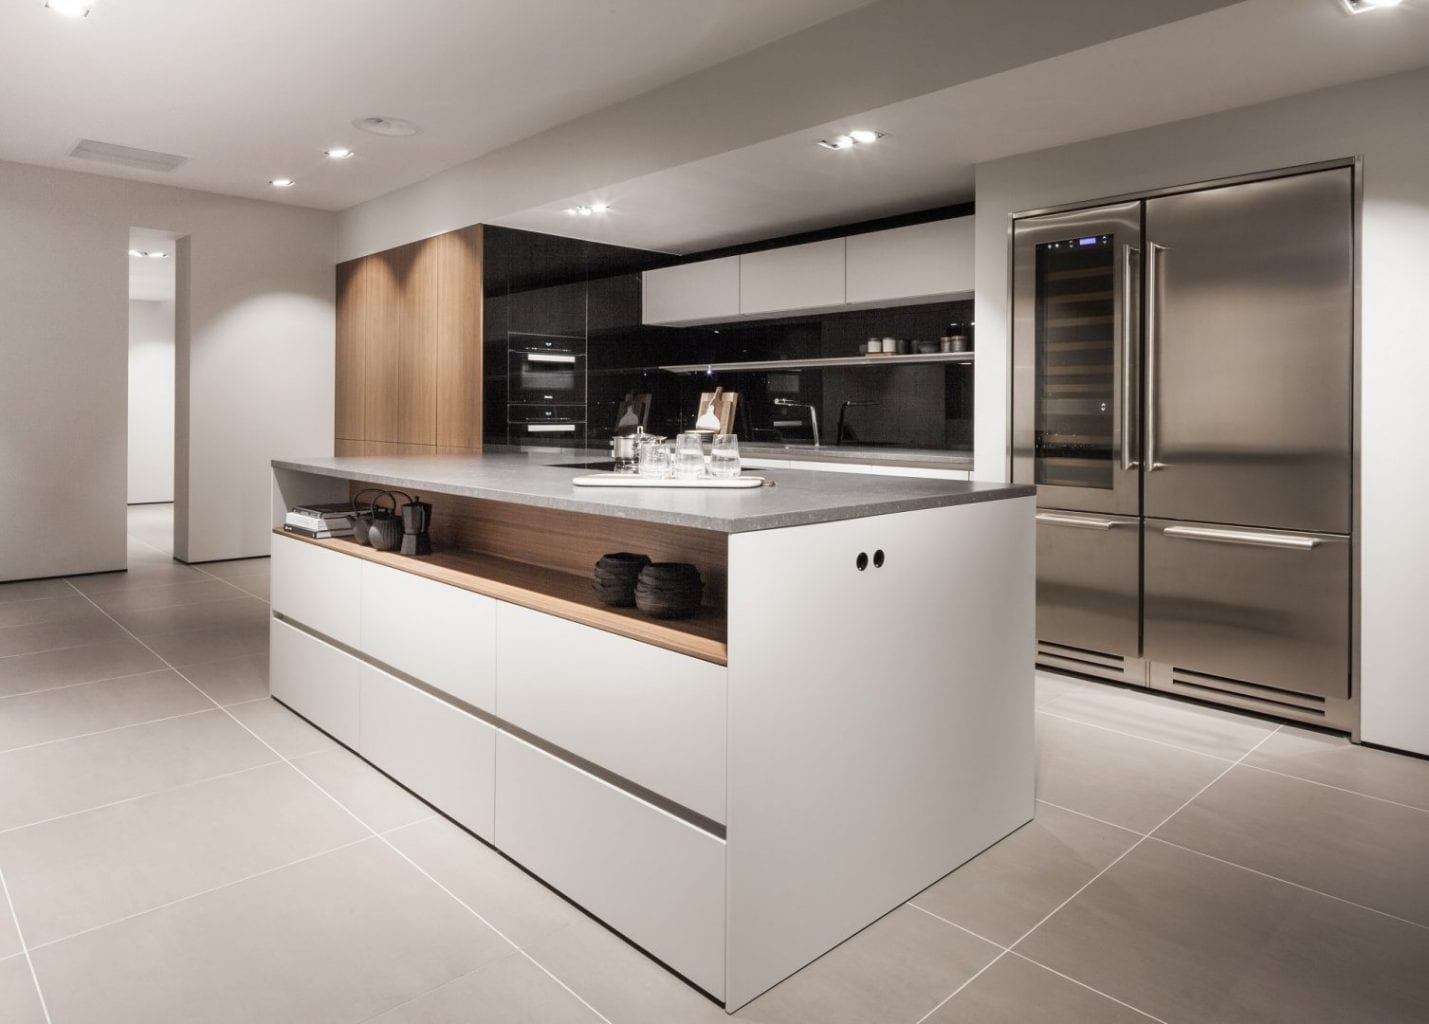 Siematic Showroomkeukens Siematic Pure Keuken S4 Goergen Keukens Uw Siematic Dealer